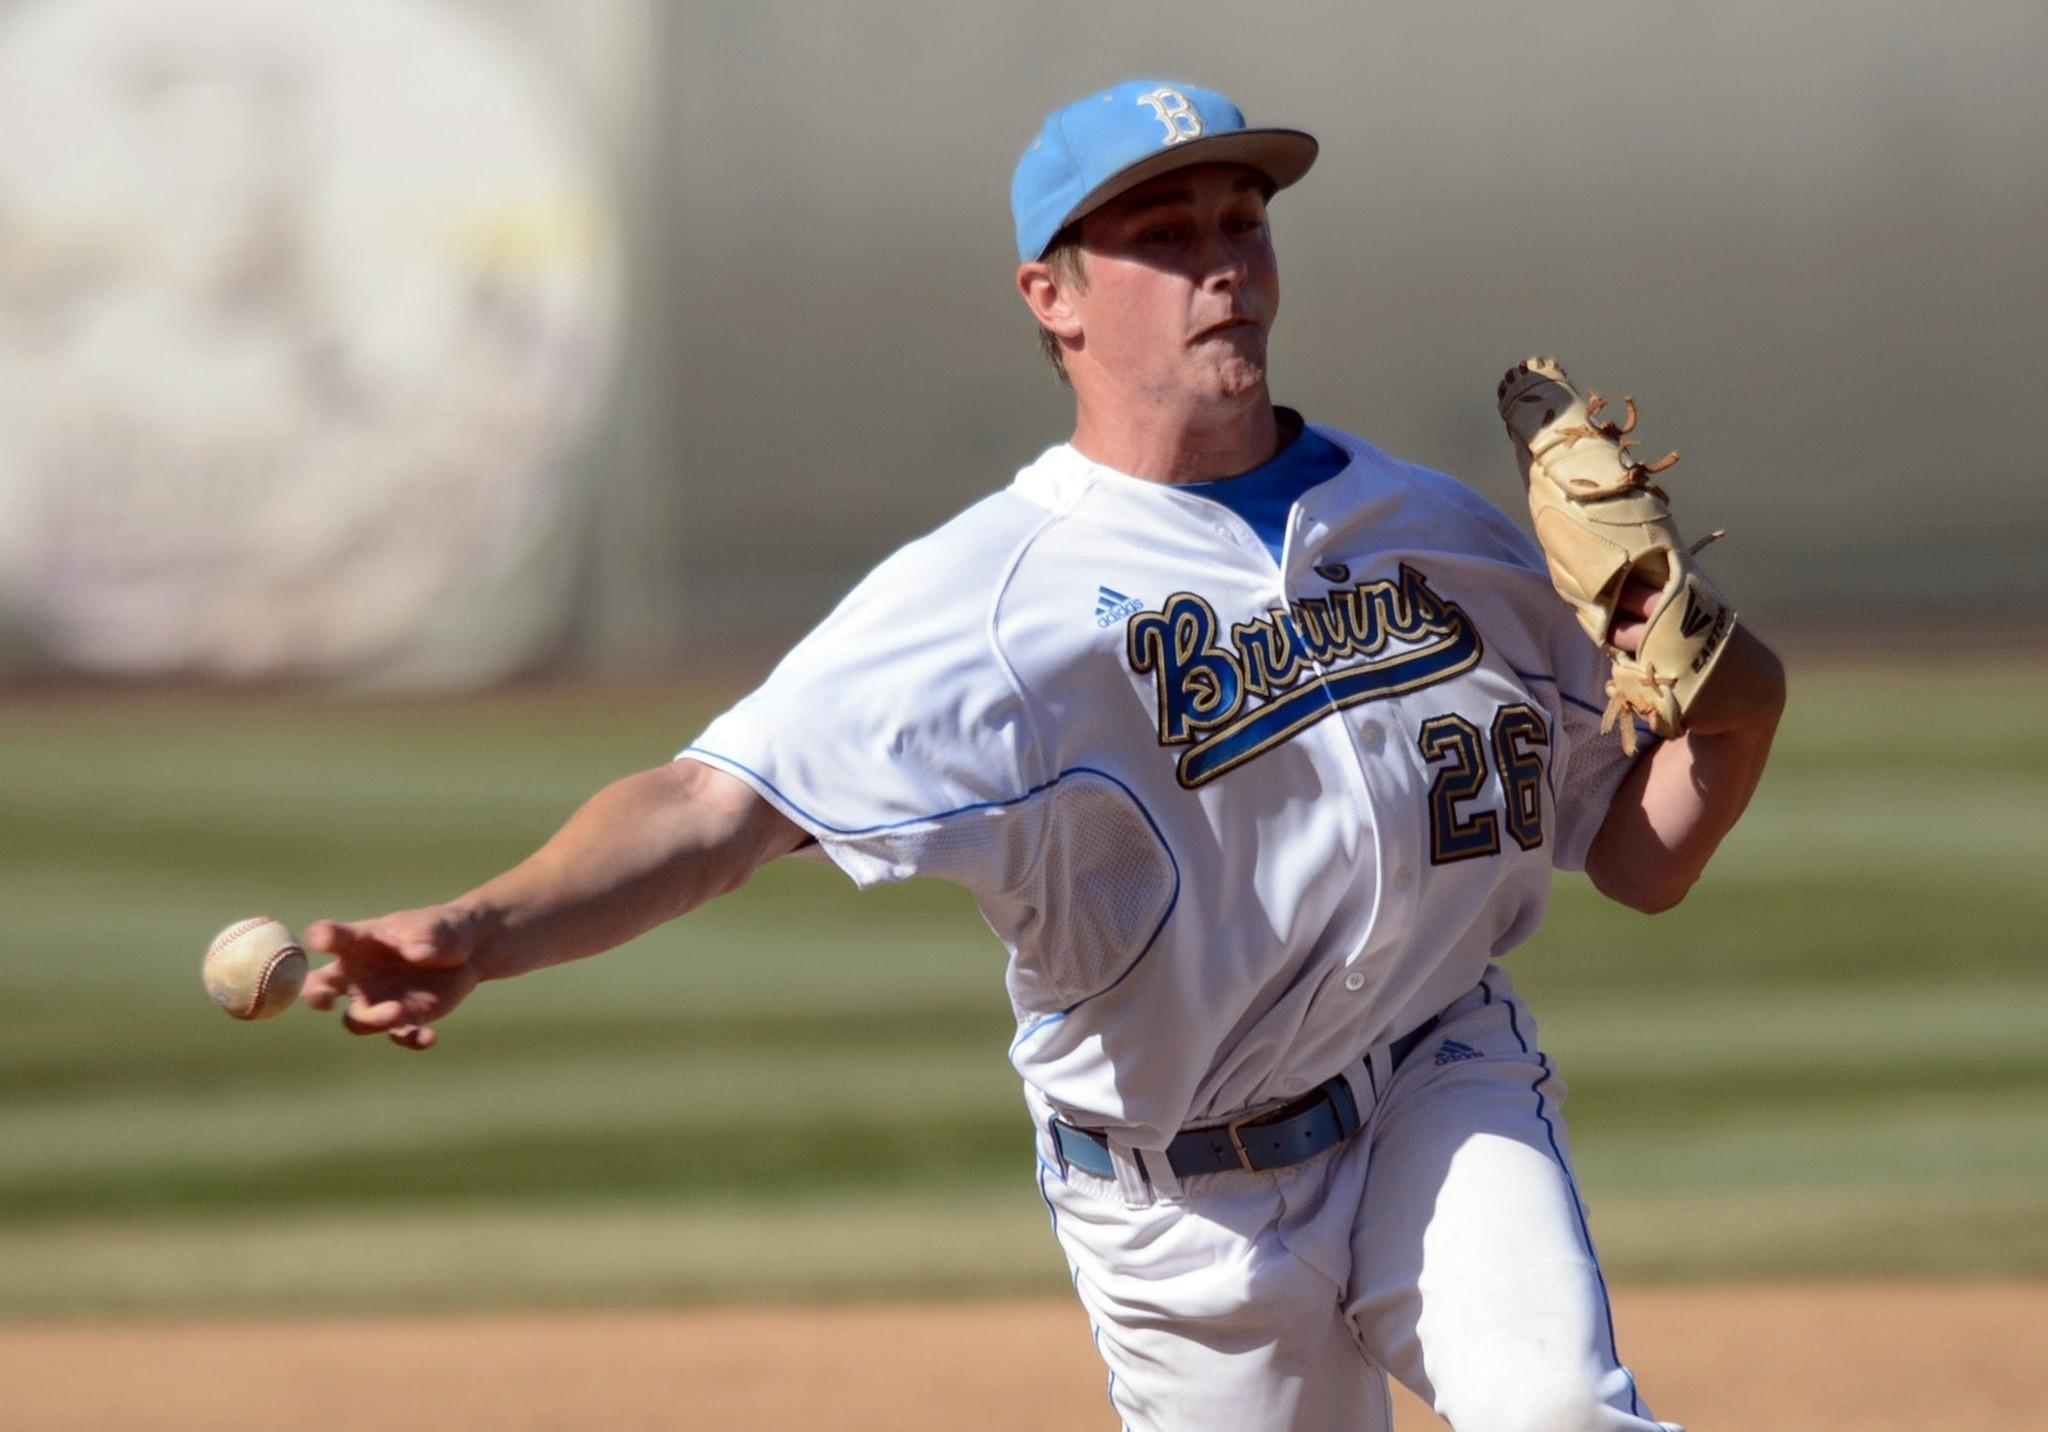 UCLA reliever David Berg went 7-0 last season with an NCAA-record 24 saves.